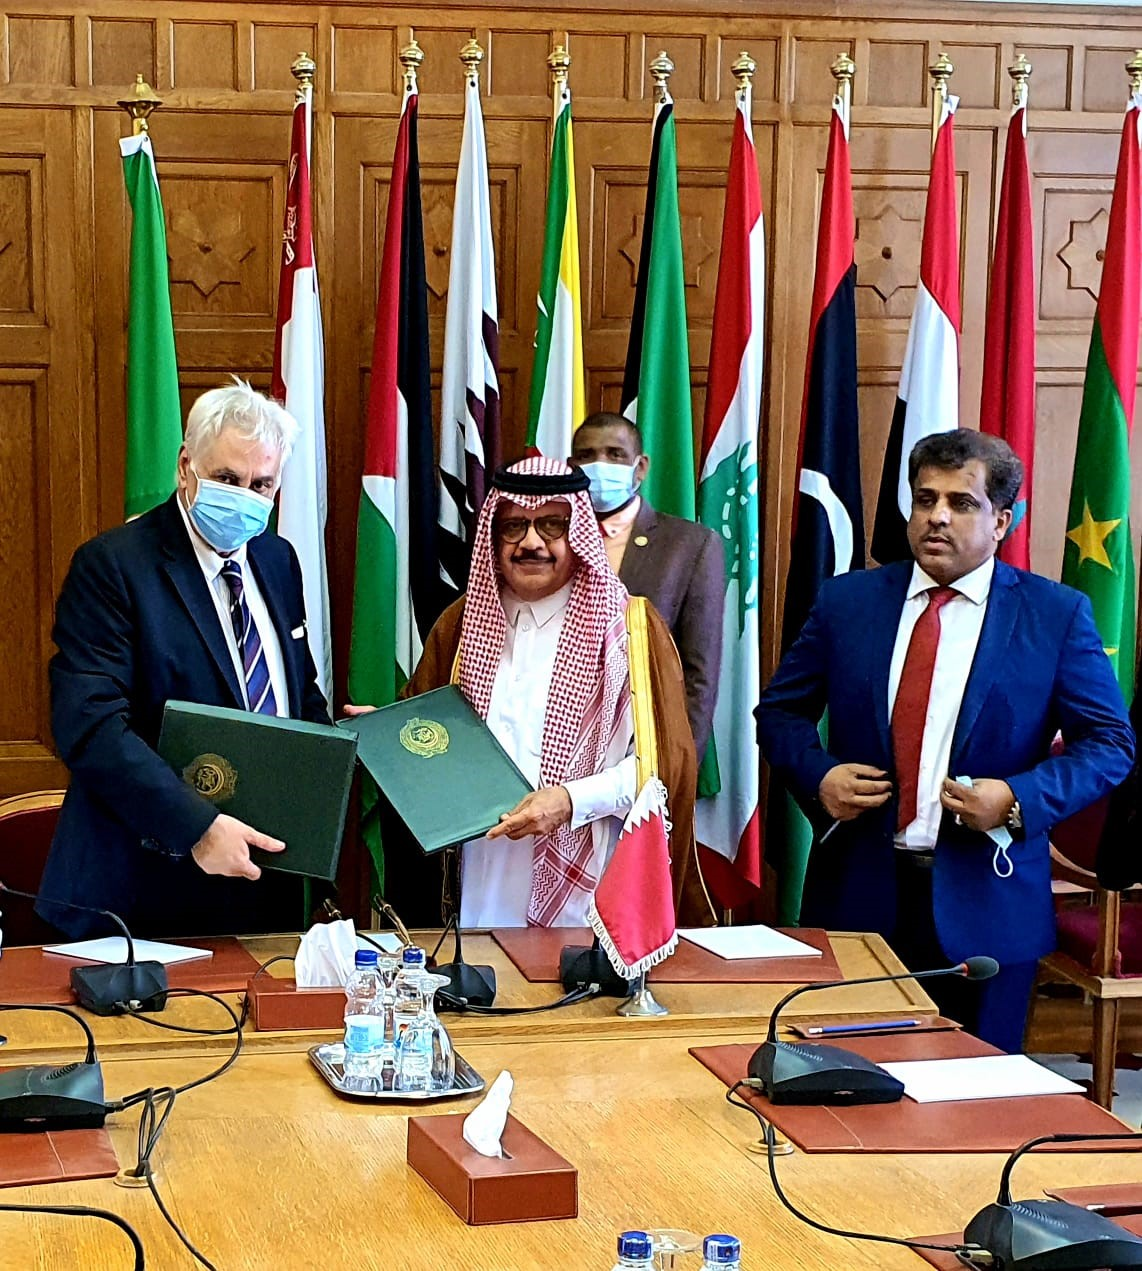 The State of Qatar Agrees on Establishing Arab Organization for Communication and Information Technology at Arab League